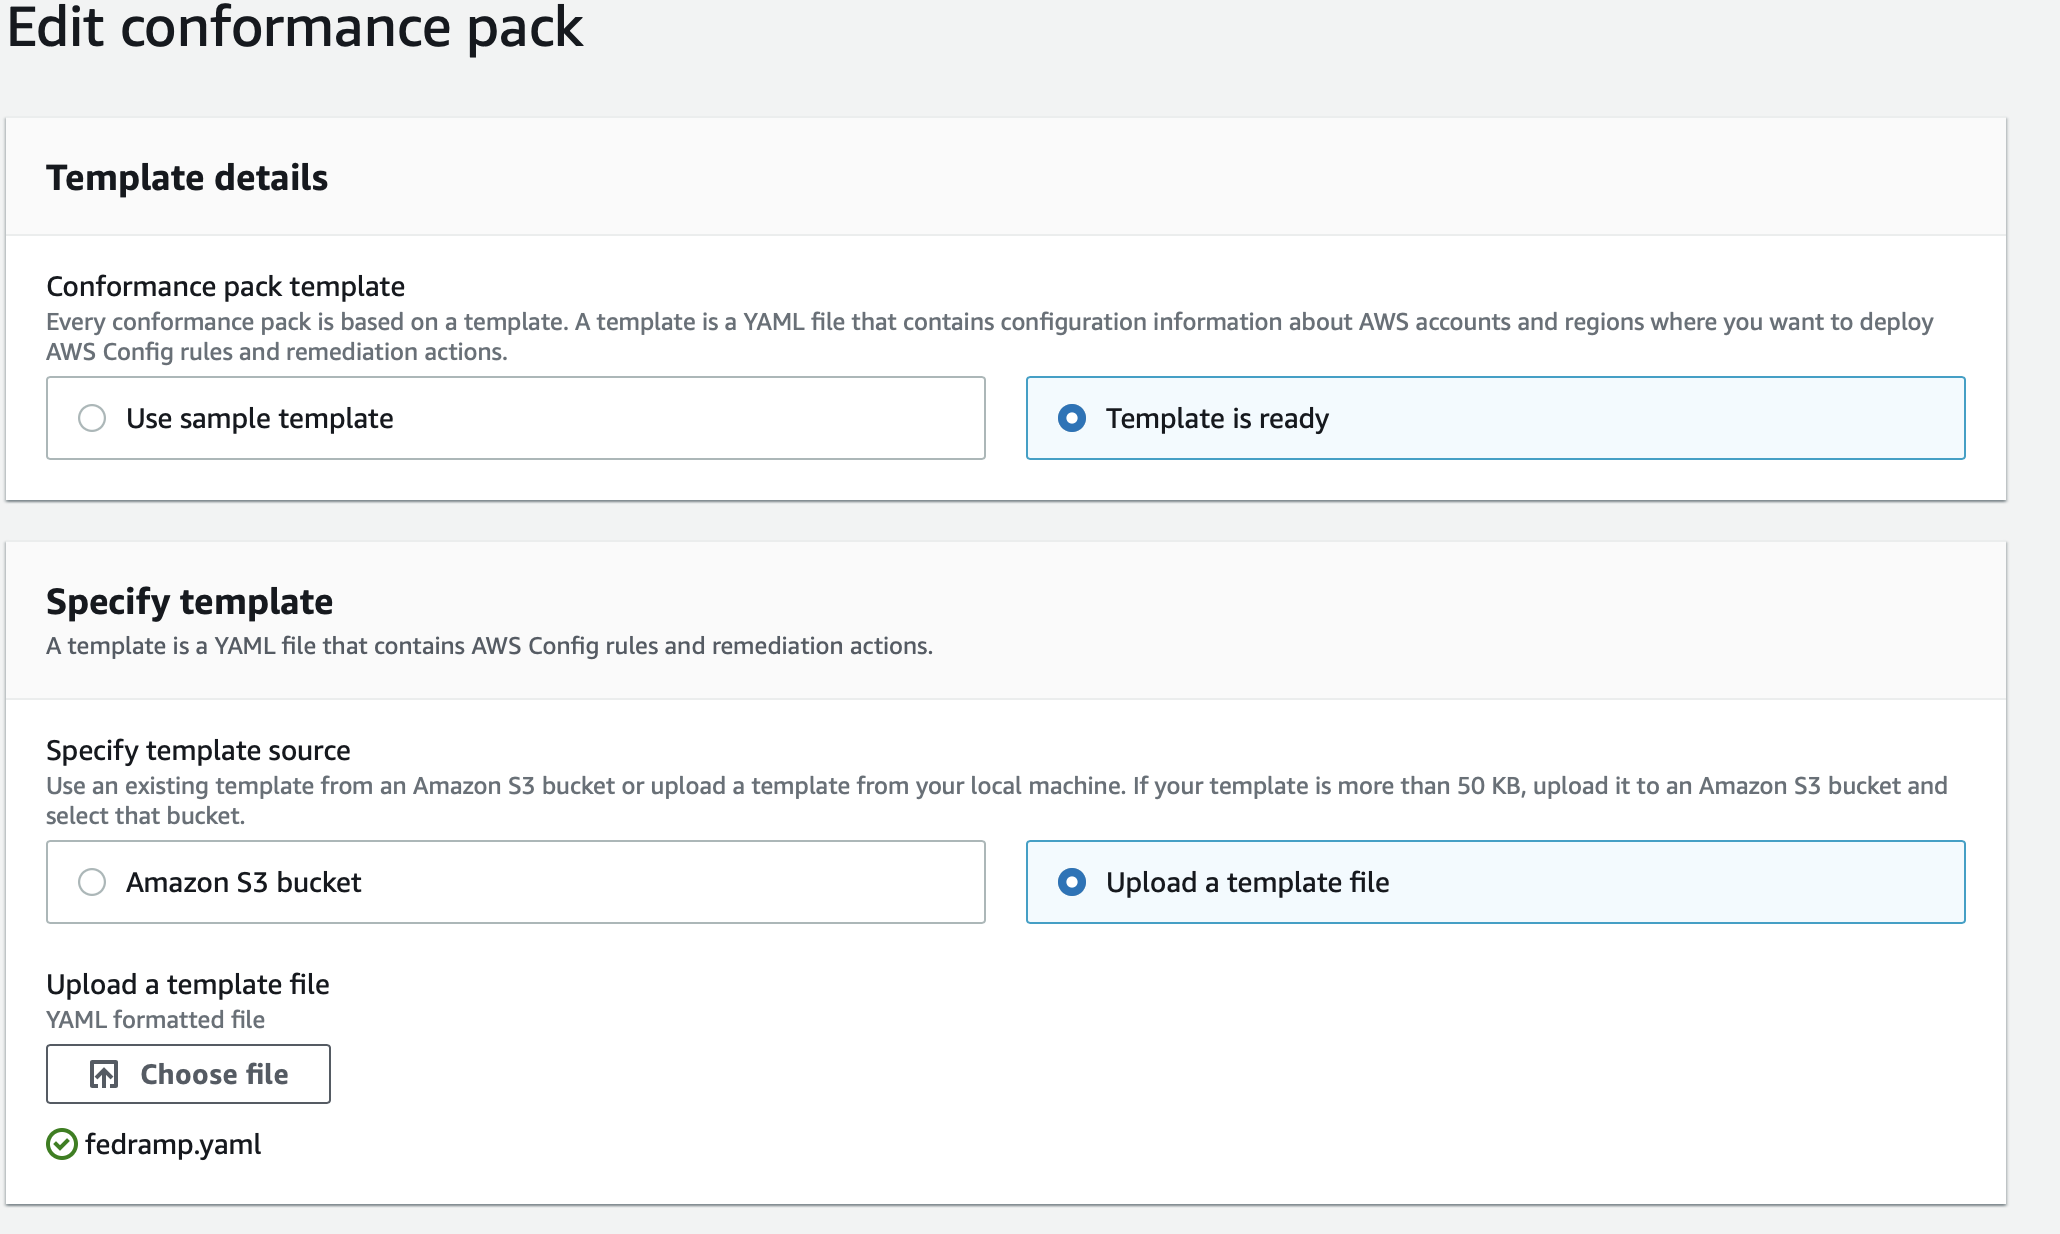 The Edit conformance pack page includes options for using a sample template, specifying a template source like an S3 bucket, and uploading a template file (in this case, fedramp.yaml).